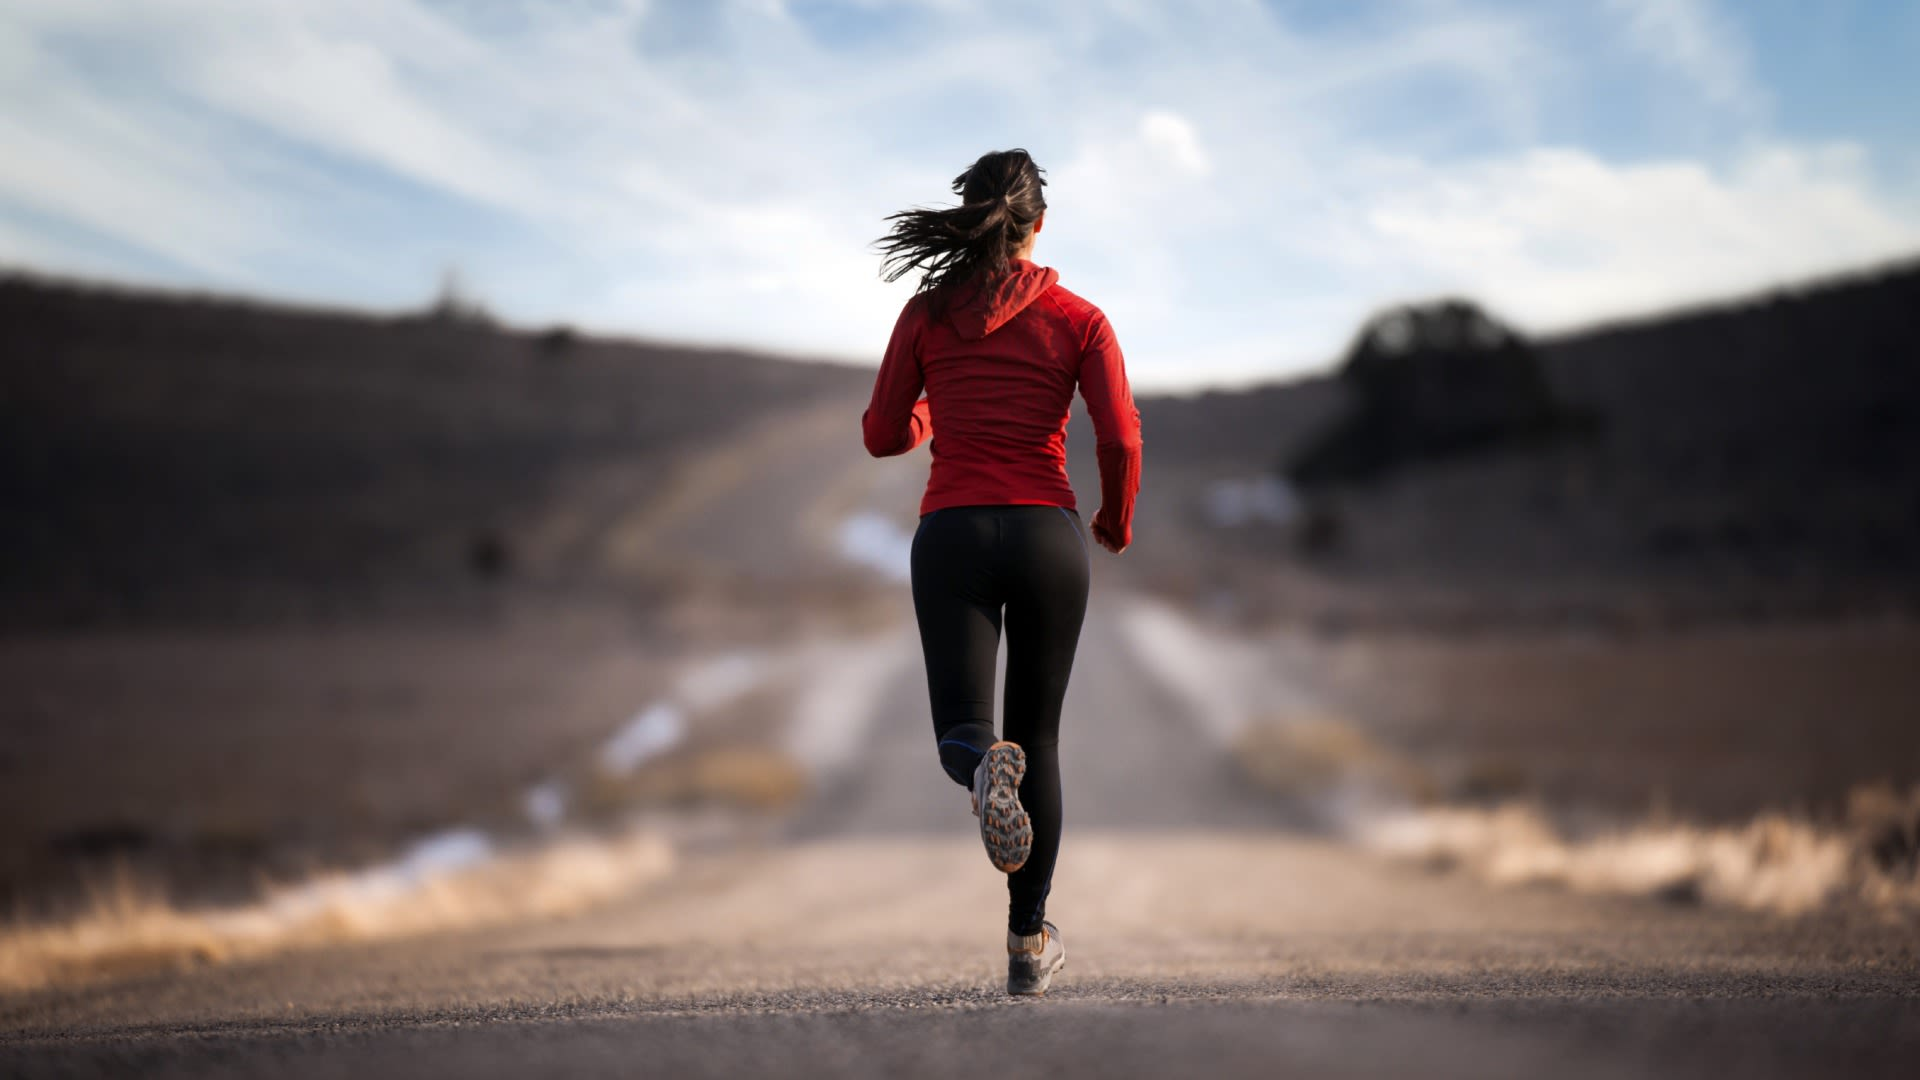 Physical activity helps you quickly recharge.